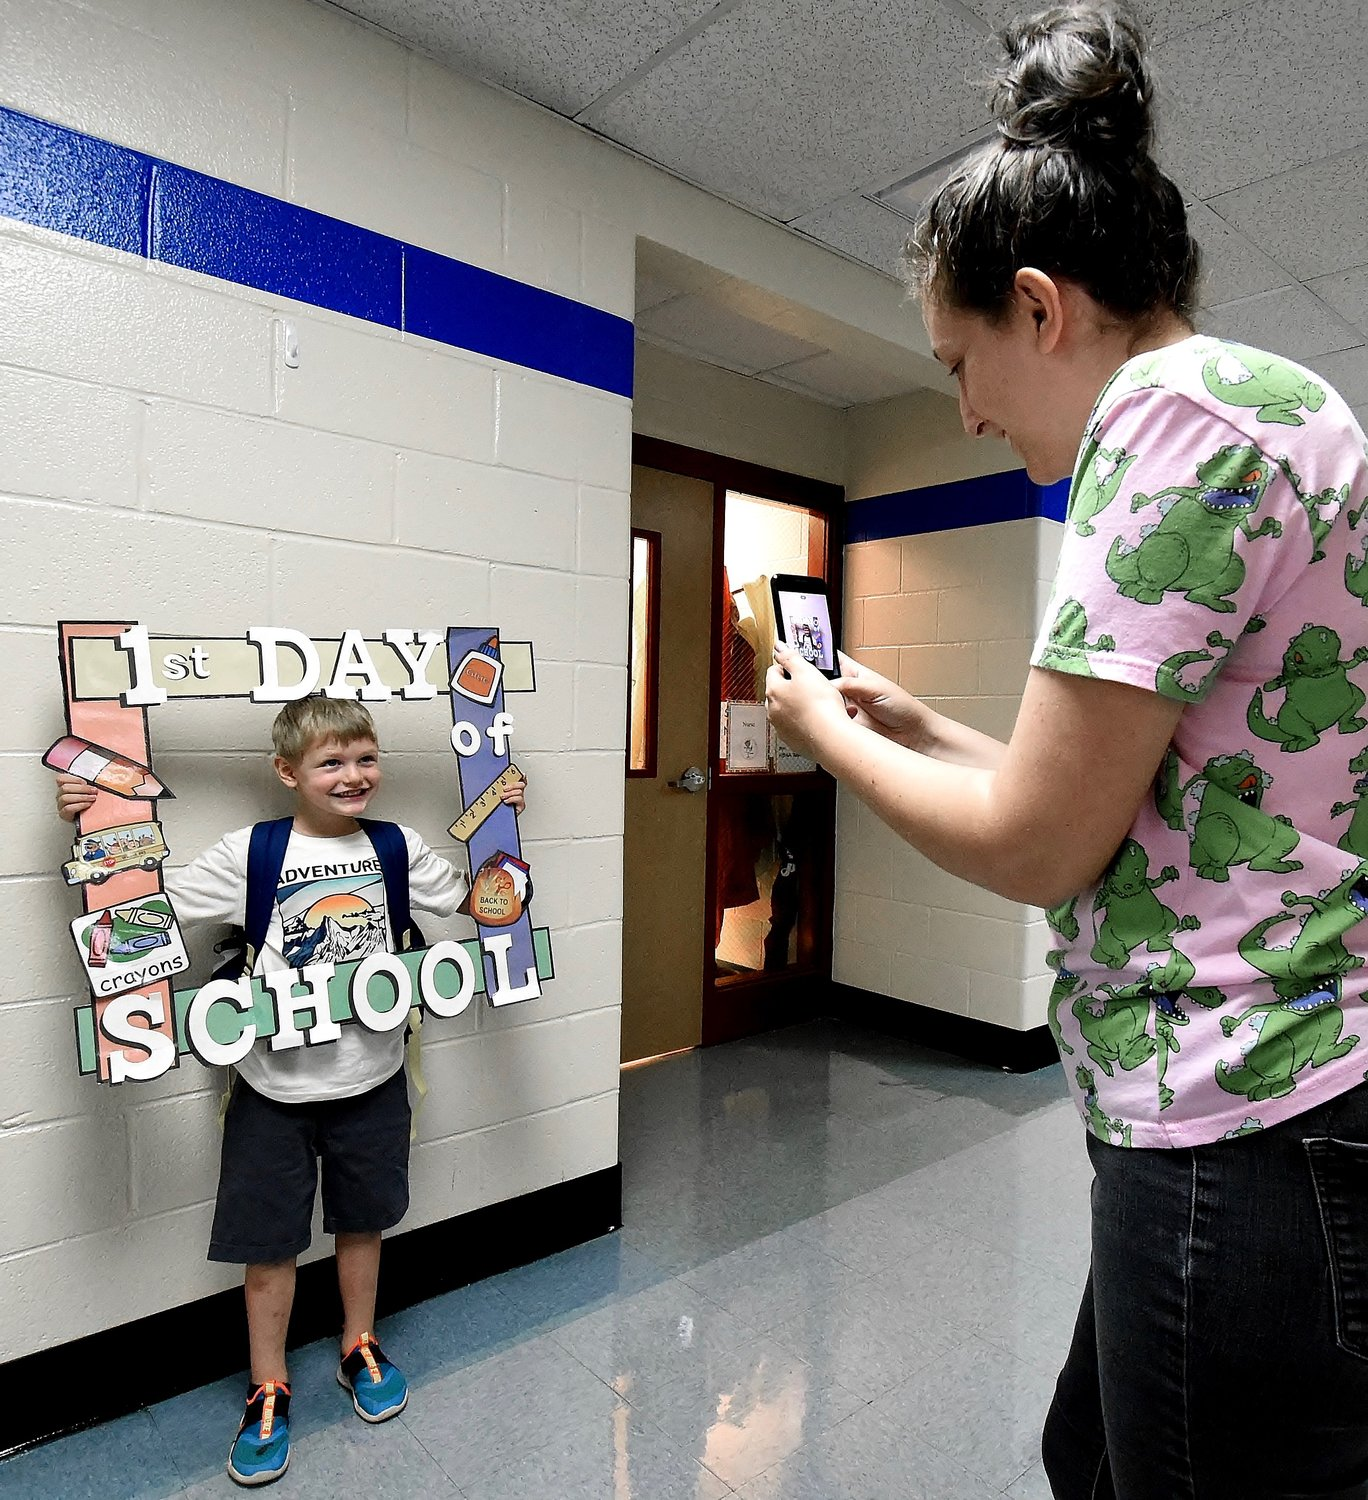 RANDY PARKER/THE DAILY TRIBUNE NEWS Hamilton Crossing Elementary student Abraham Young poses for a picture on his first day of school Wednesday.